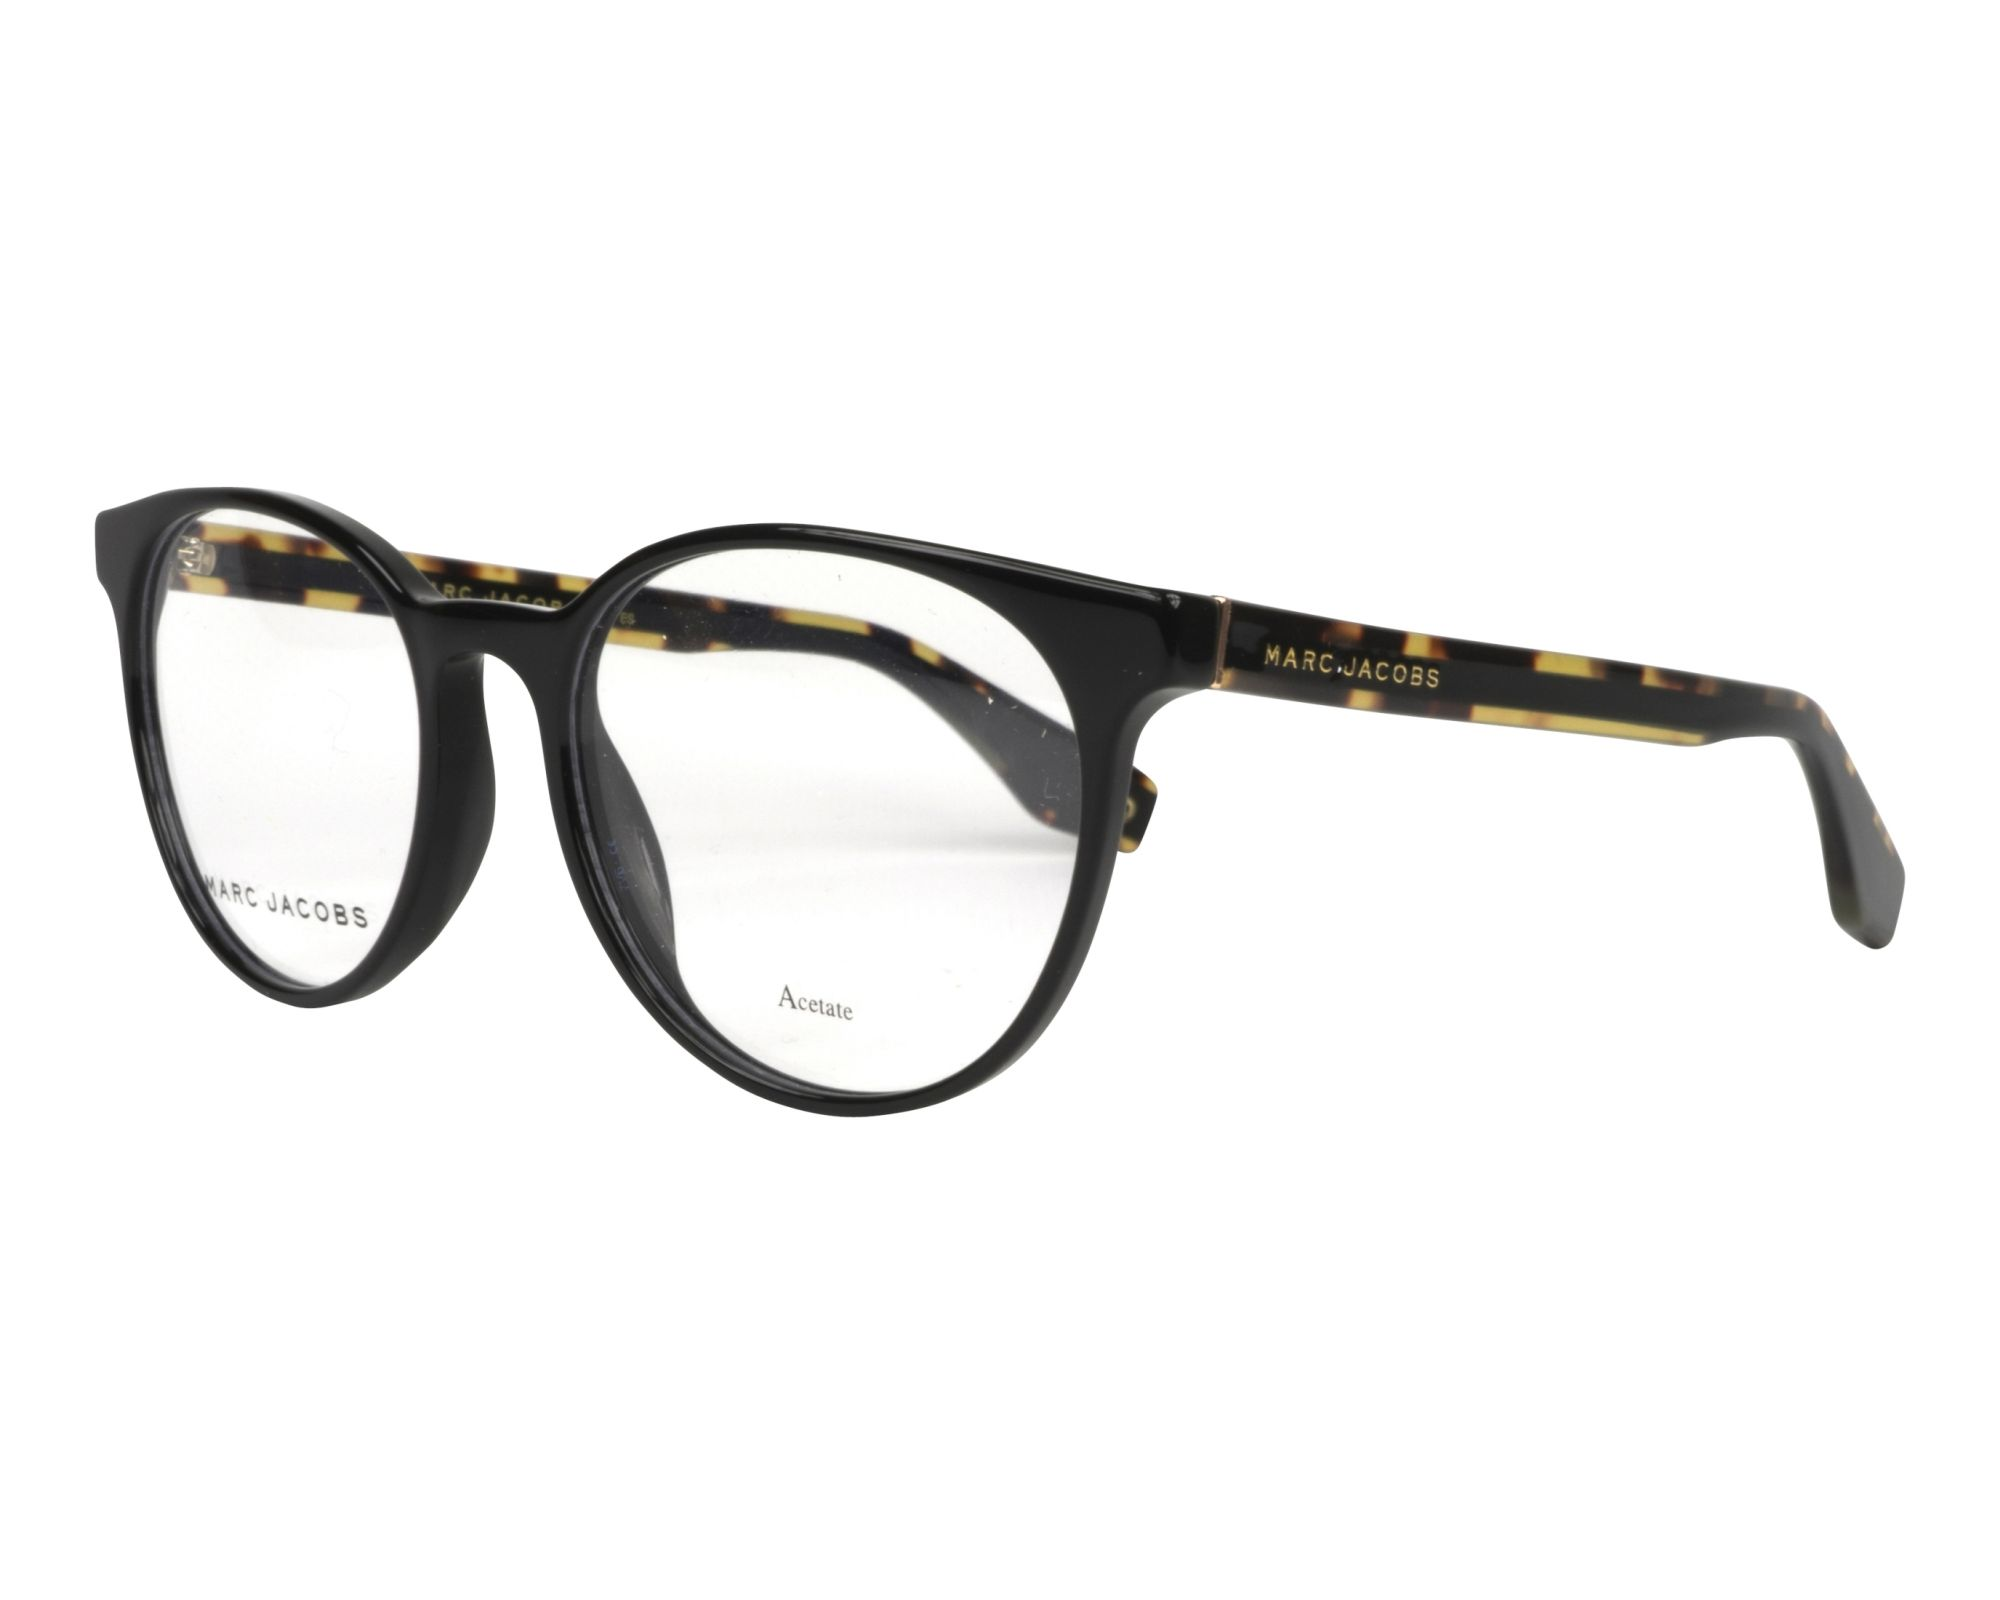 5feac43f32 eyeglasses Marc Jacobs MARC-283 807 52-18 Black Brown profile view